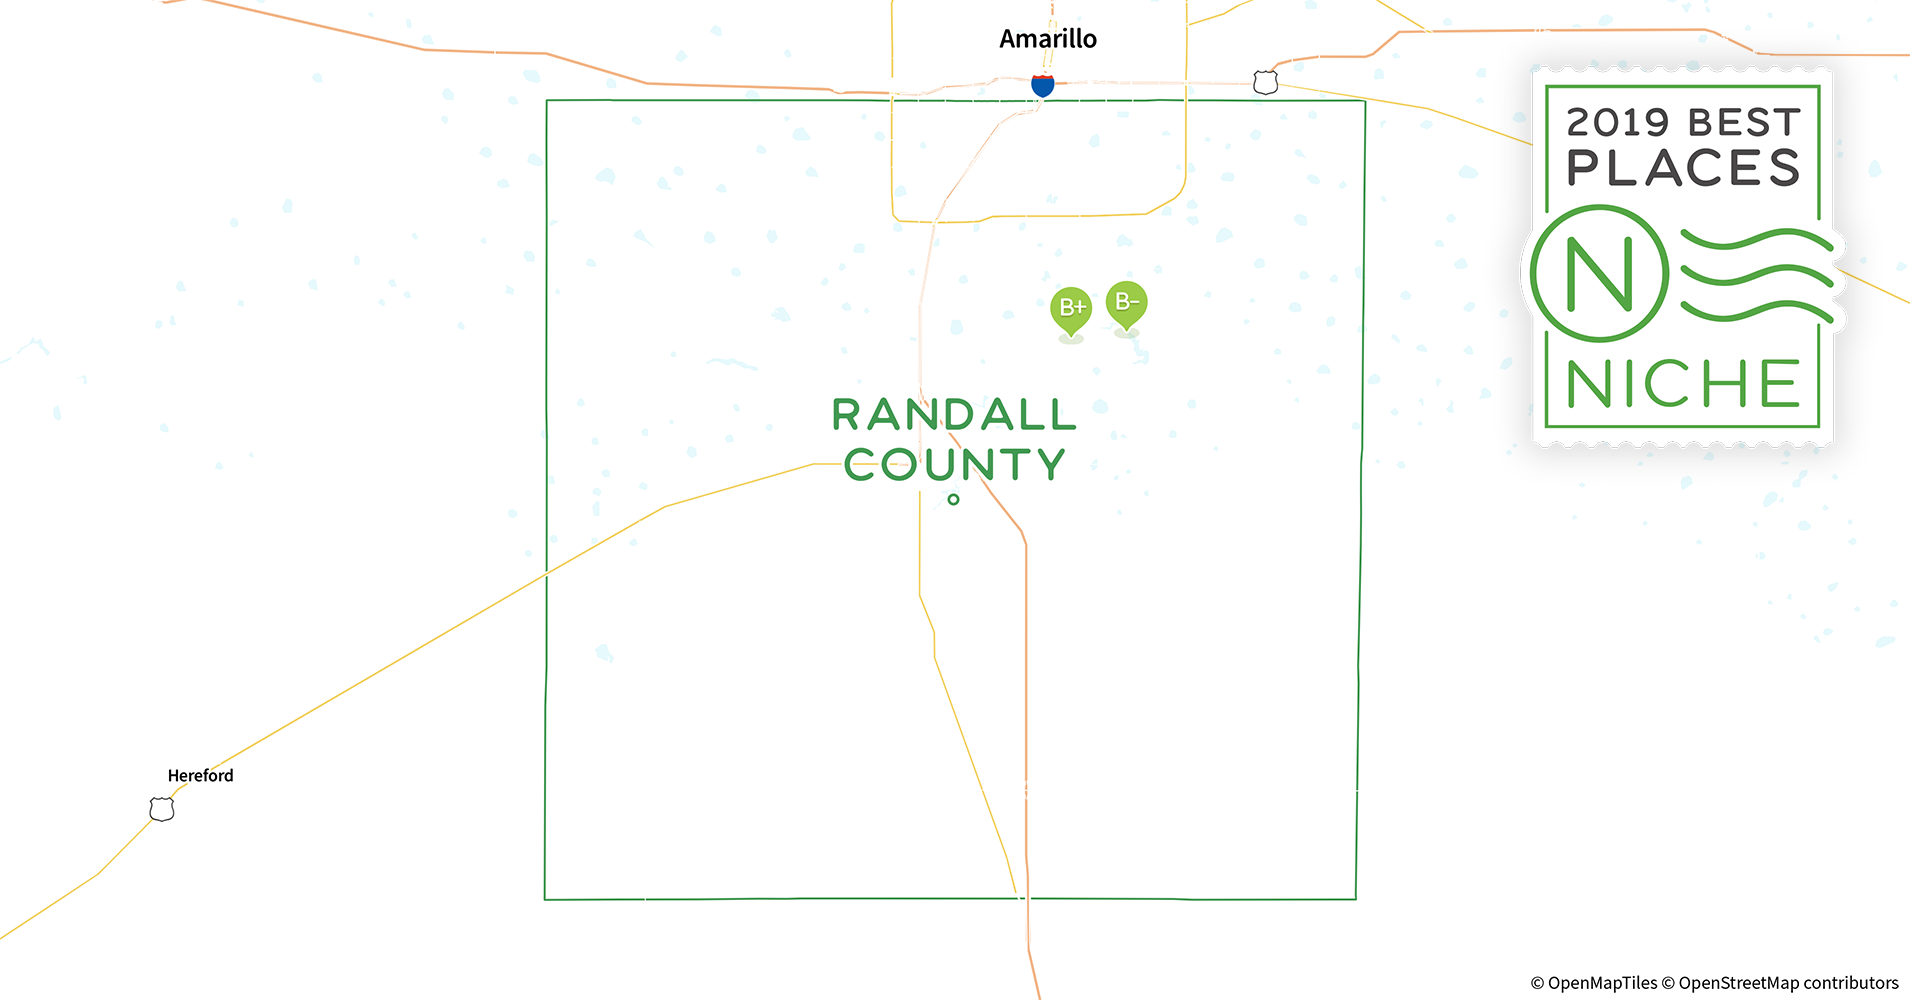 2019 Best Places to Live in Randall County, TX - Niche